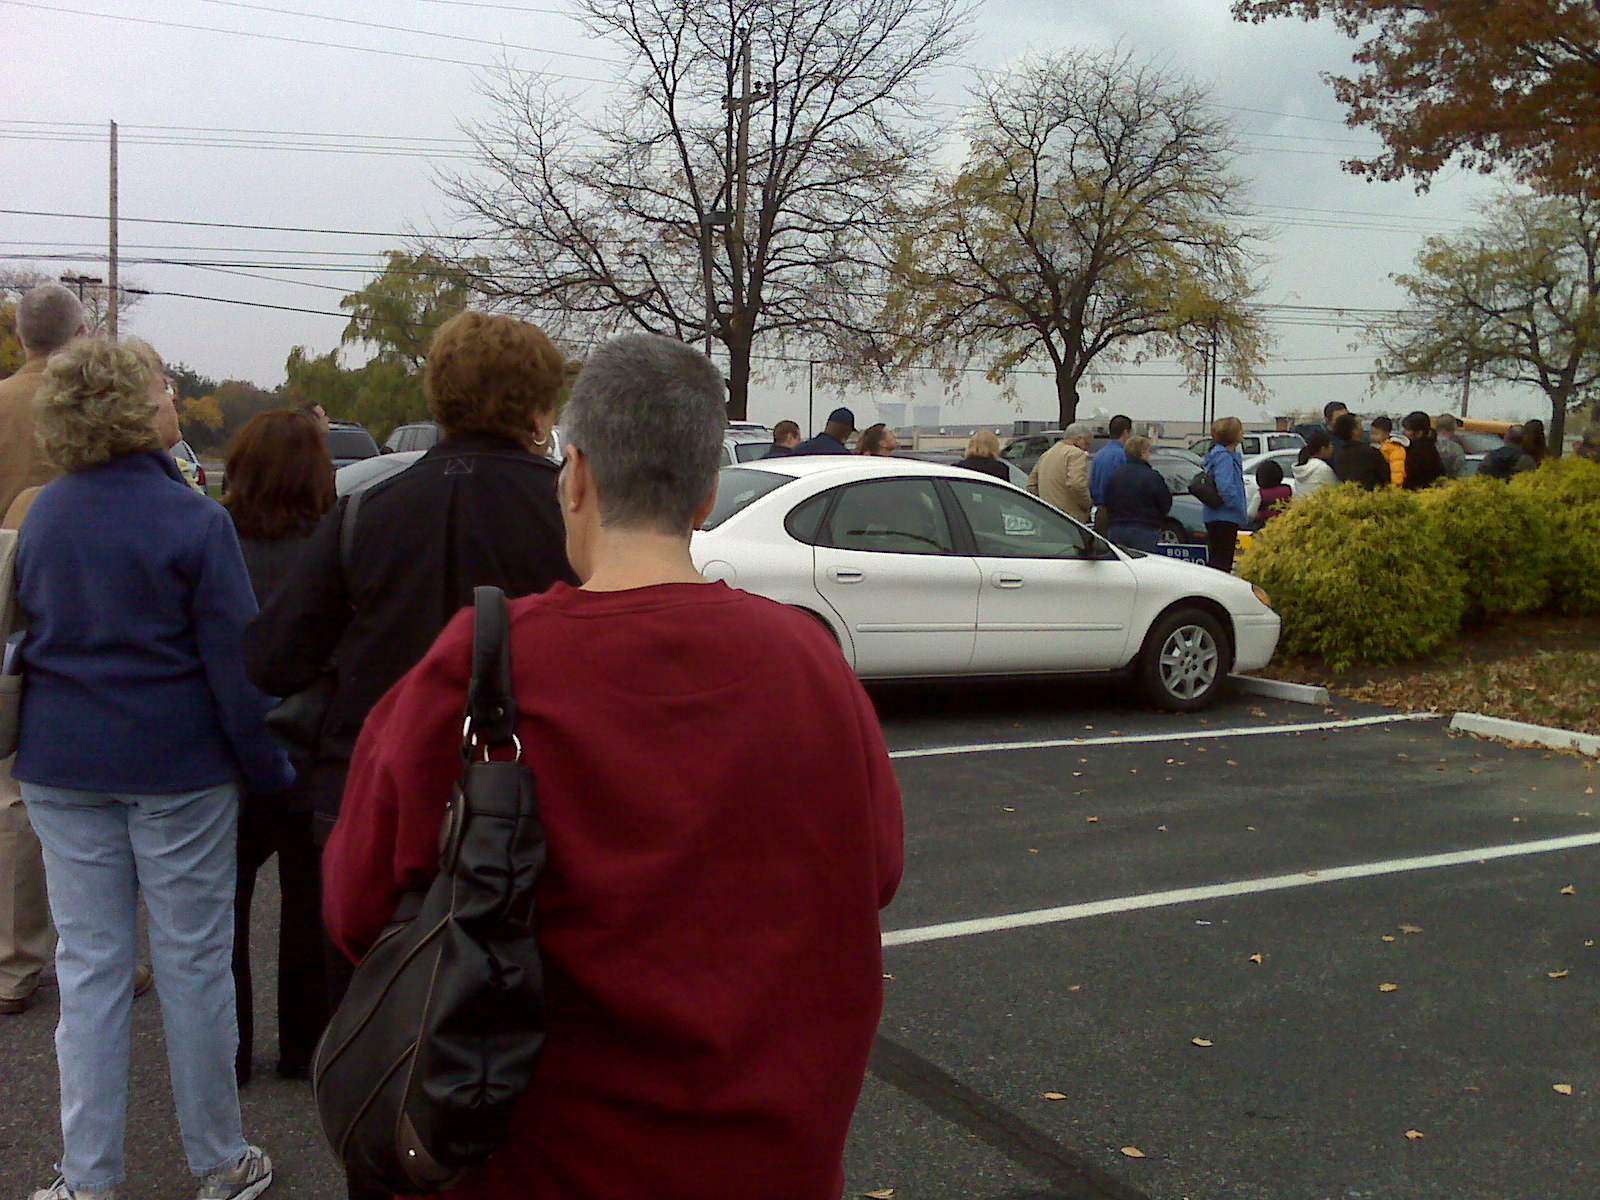 Voting Line in Limerick, PA